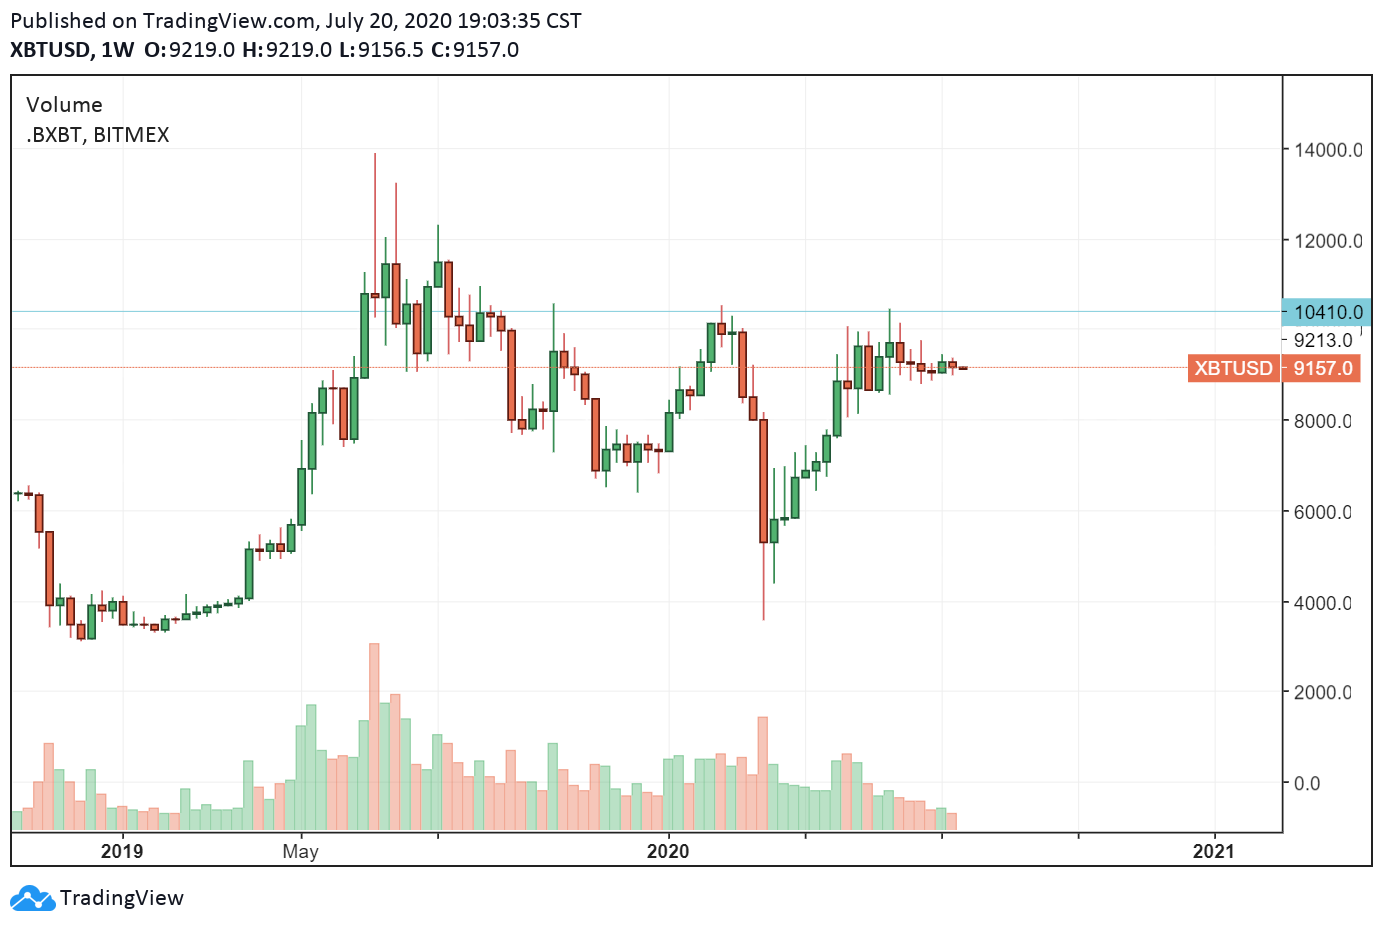 Bitcoin prices fell below $ 3,600 in March